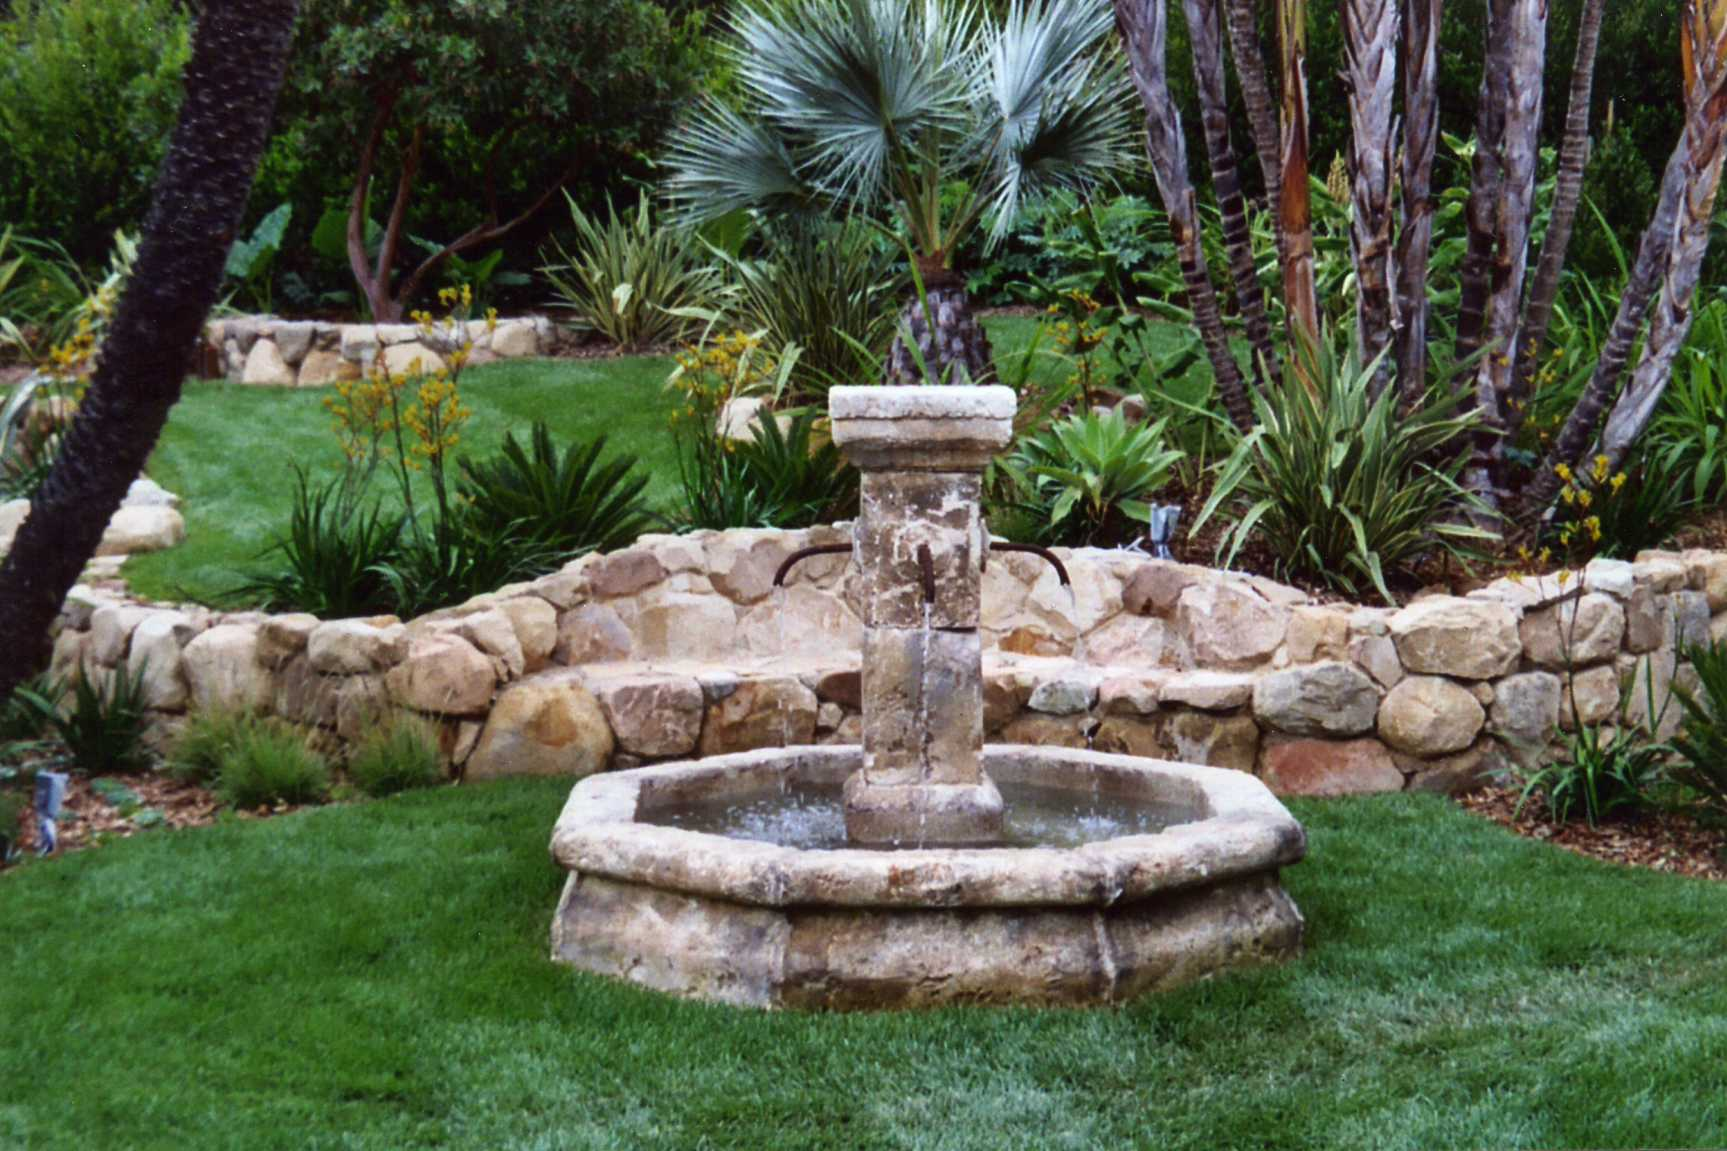 Four Spigot Fountain